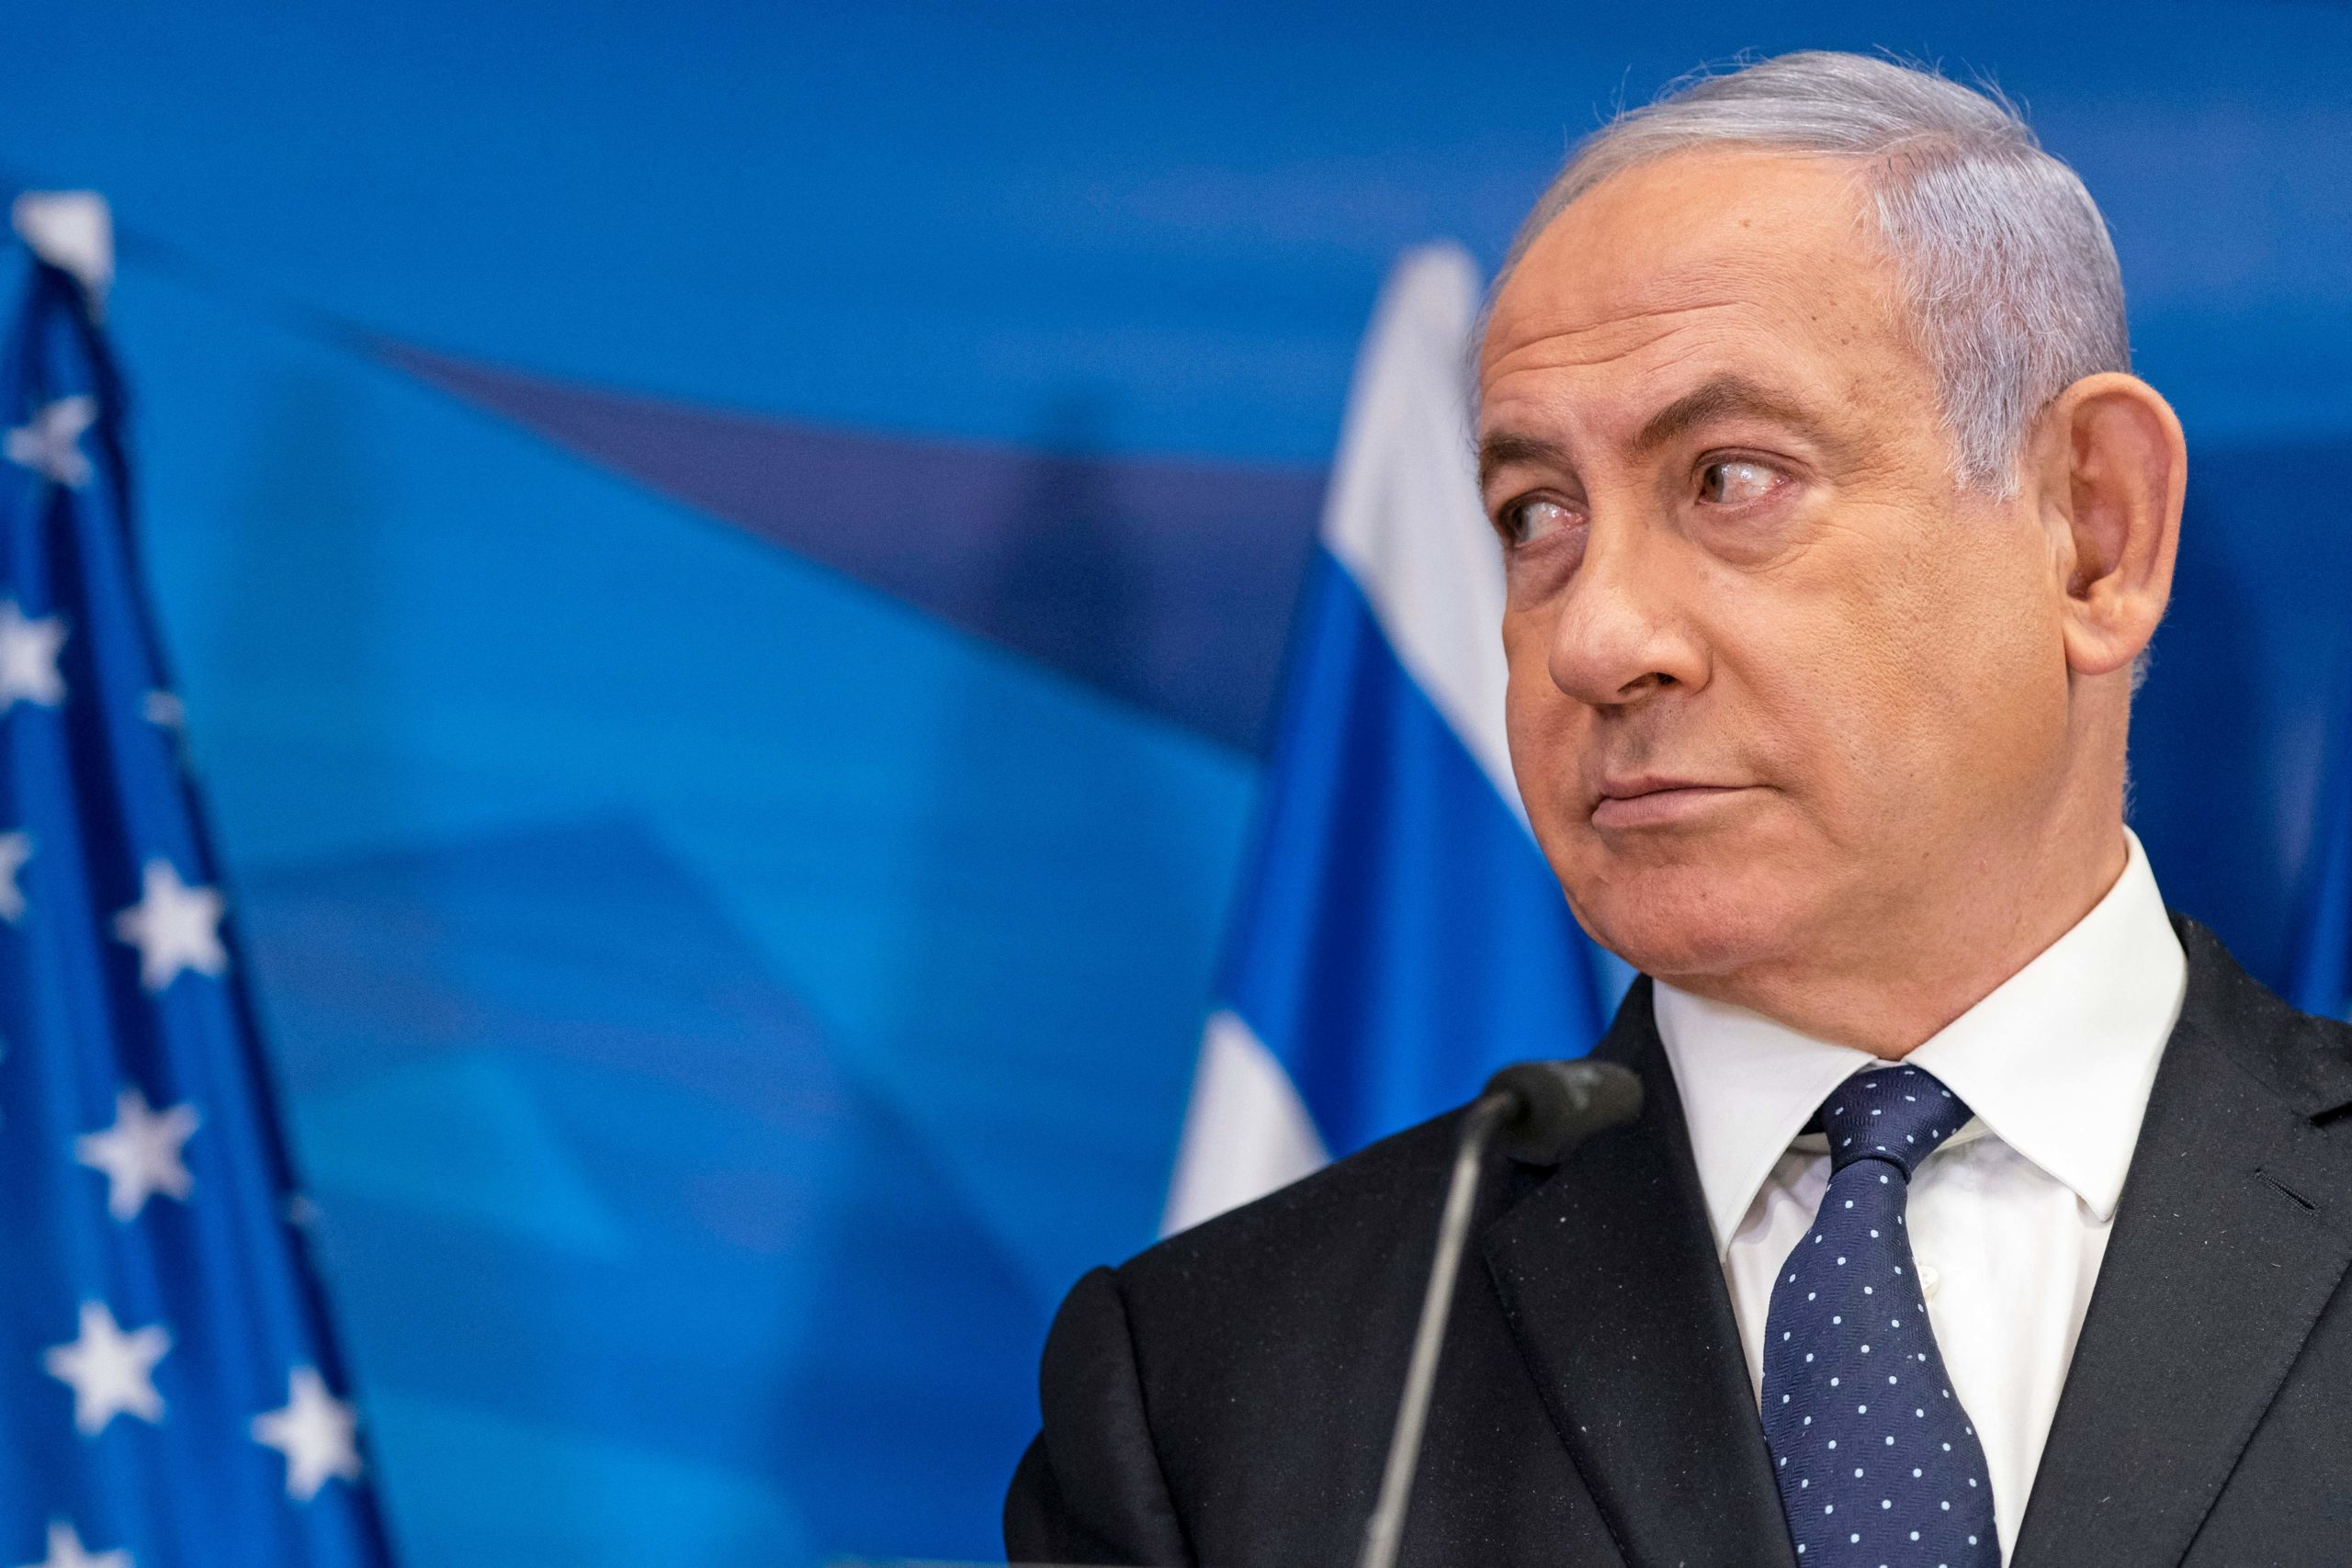 Israeli Prime Minister Benjamin Netanyahu listens to US Secretary of State Antony Blinken (unseen) during a joint press conference in Jerusalem on May 25, 2021, days after an Egypt-brokered truce halted fighting between the Jewish state and the Gaza Strip's rulers Hamas. (ALEX BRANDON/POOL/AFP via Getty Images)